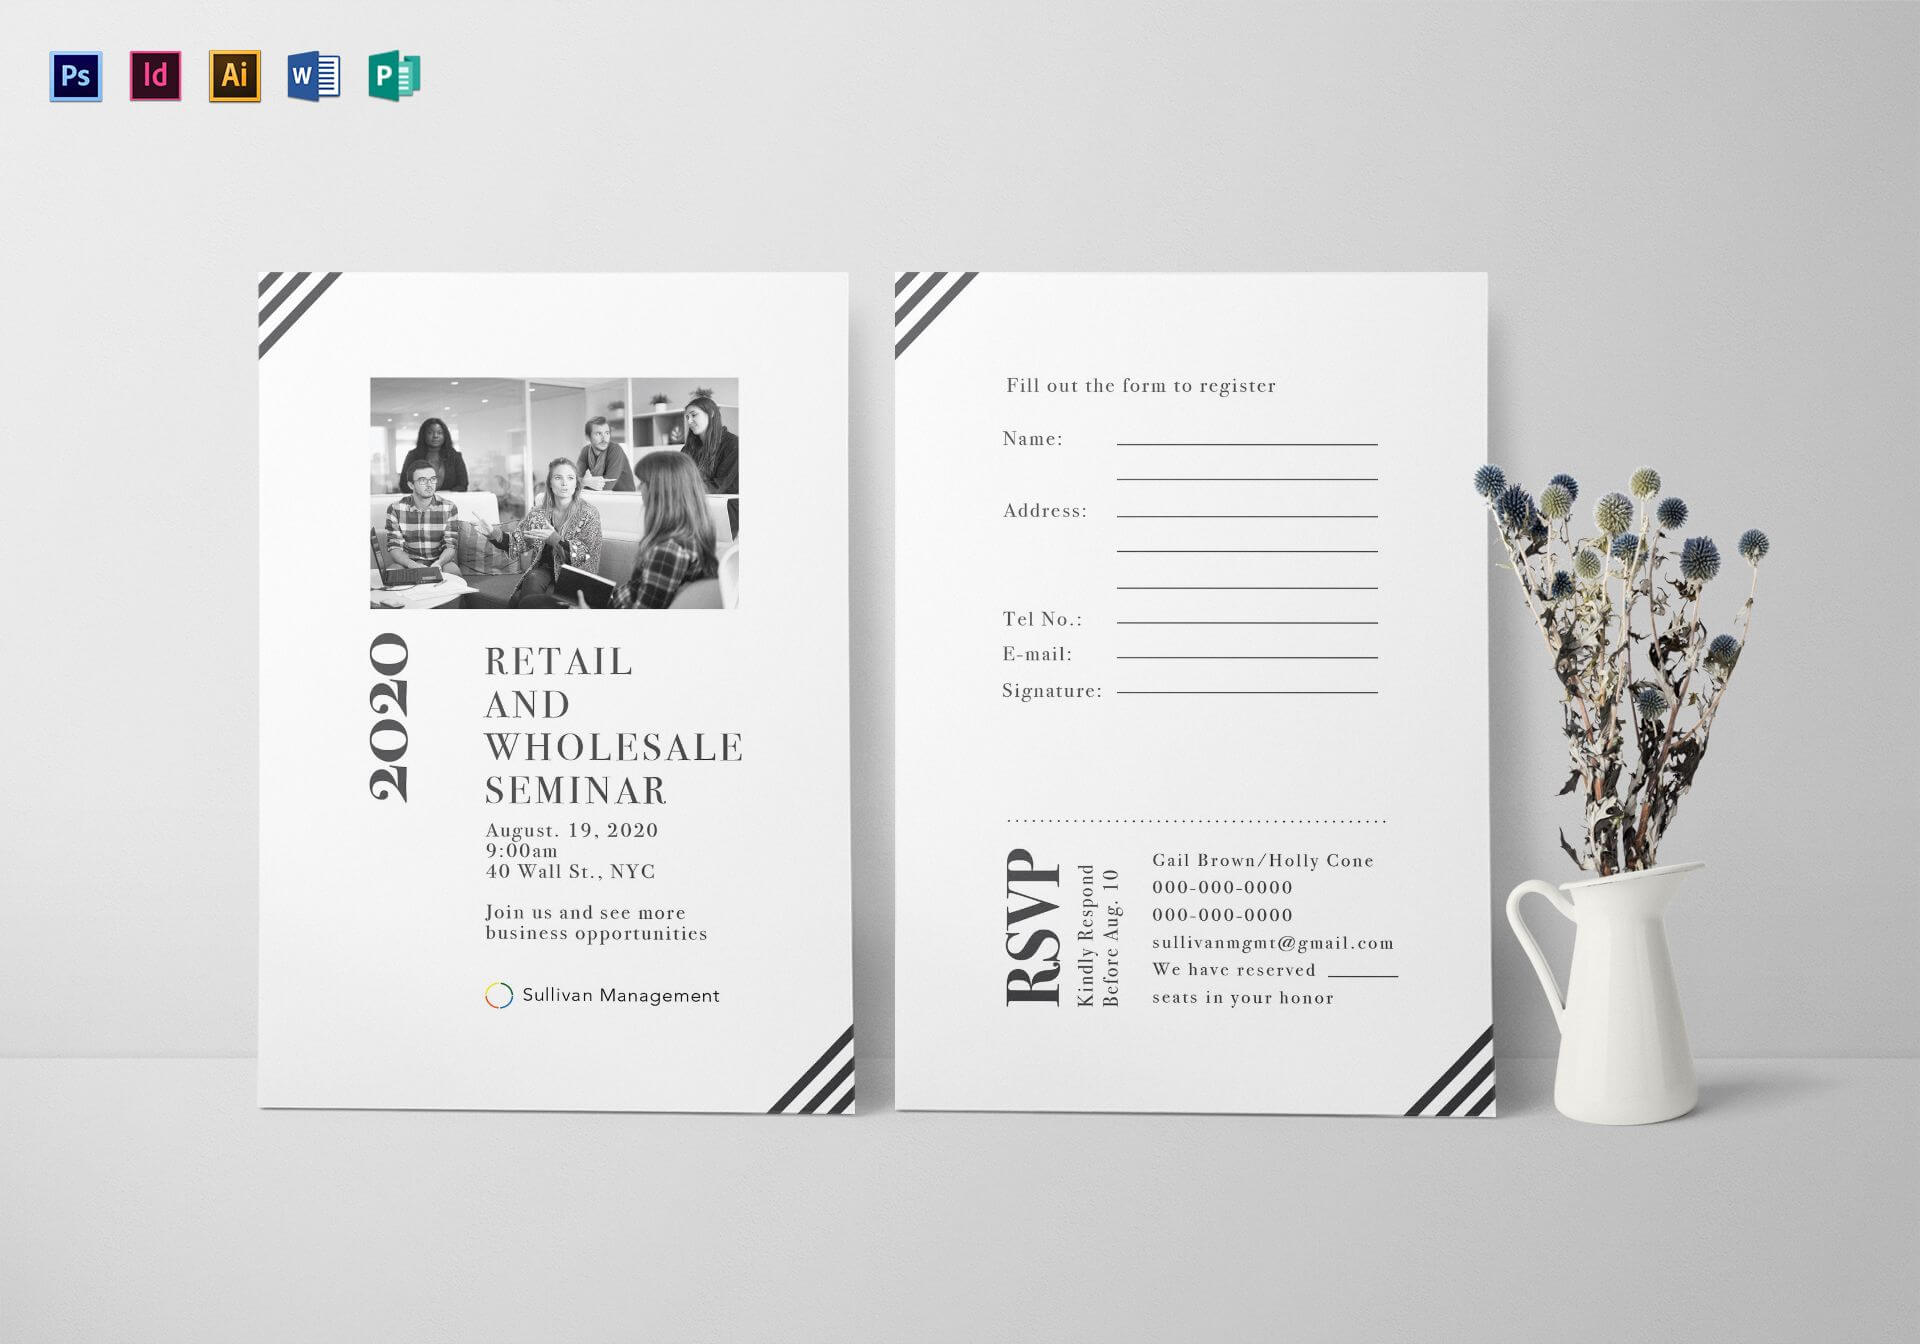 Seminar Invitation Card Template Intended For Seminar Invitation Card Template